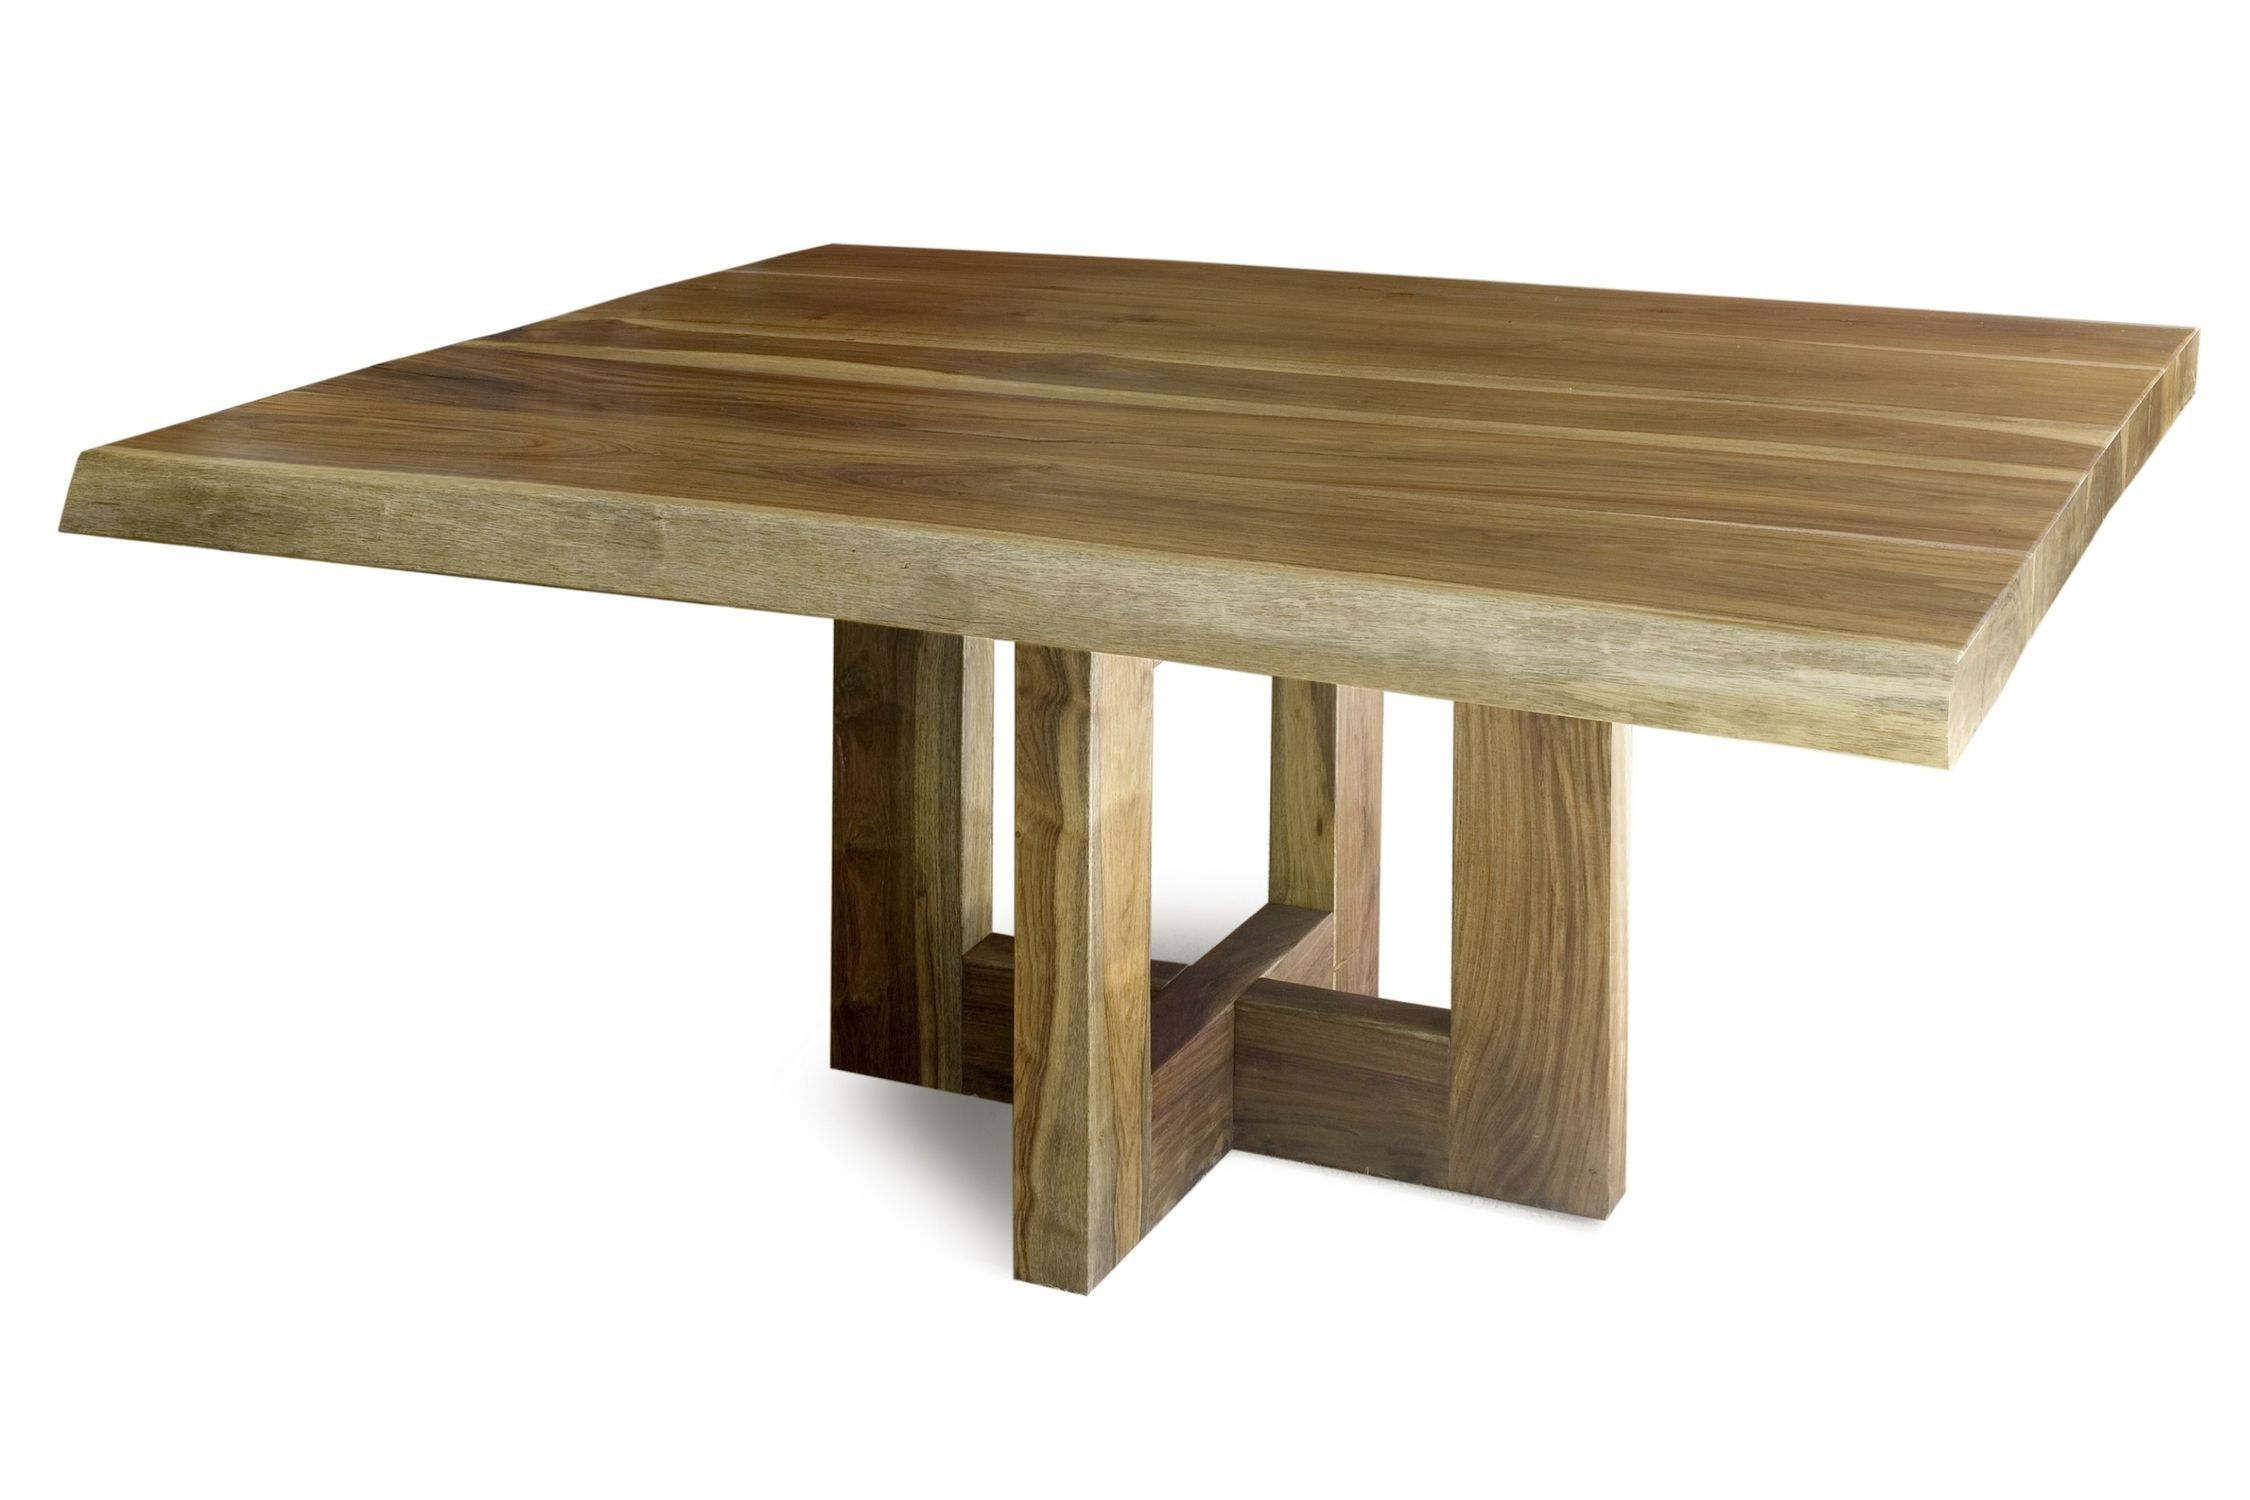 Contemporary rectangle unfinished reclaimed wood table for for Furniture table design examples